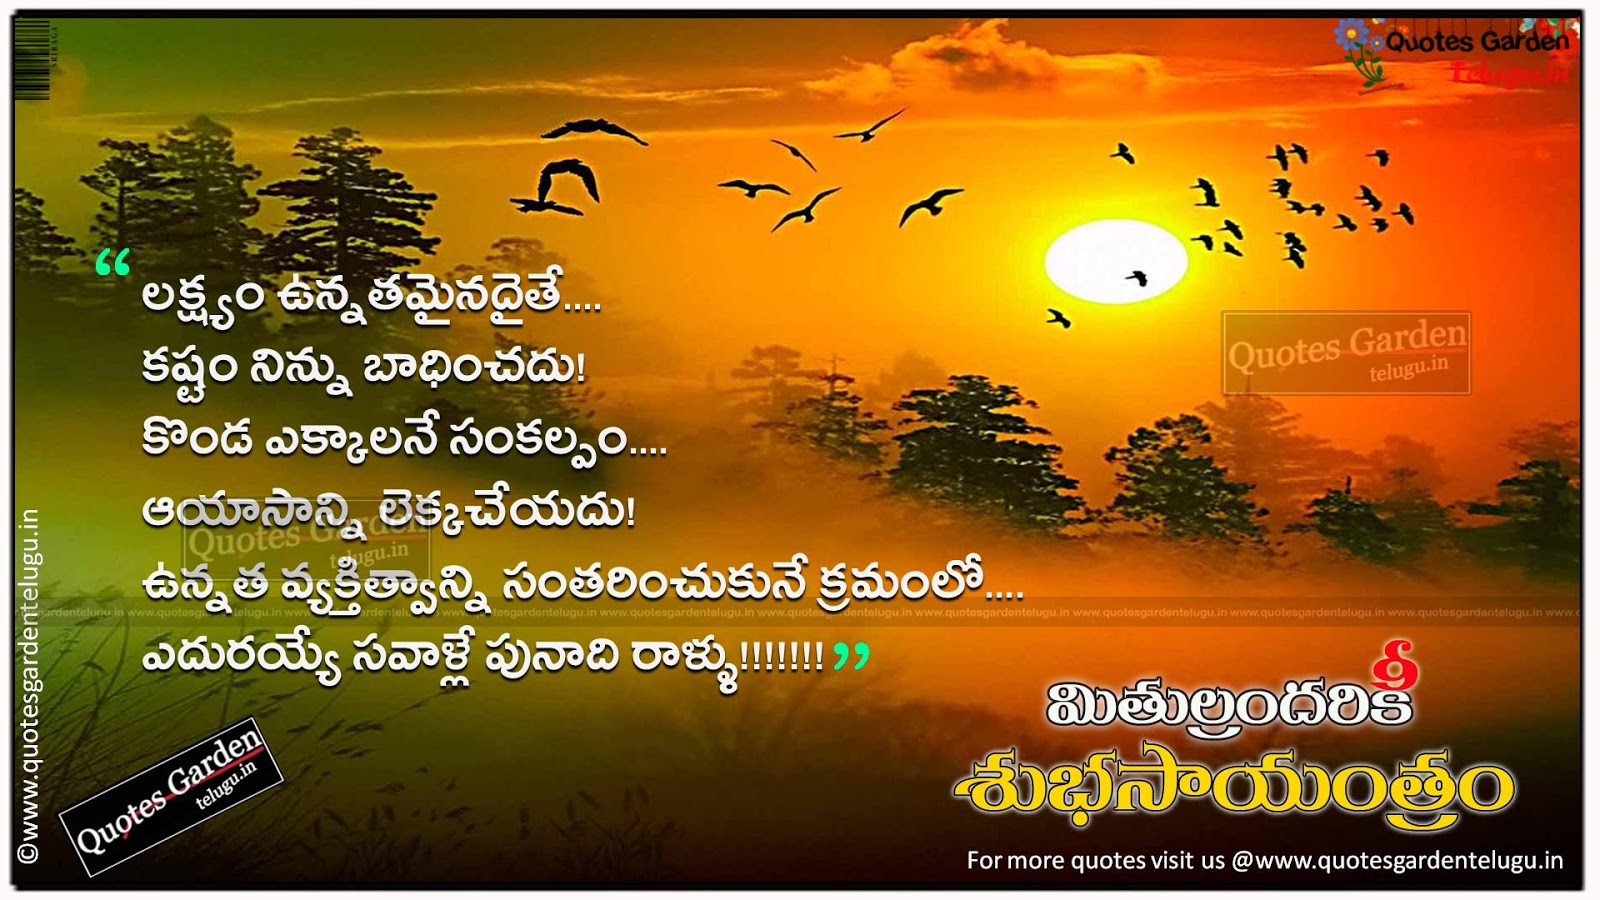 Nice Wallpapers With Quotes About Life In Hindi Telugu Good Evening Quotes With Hd Wallpapers Quotes